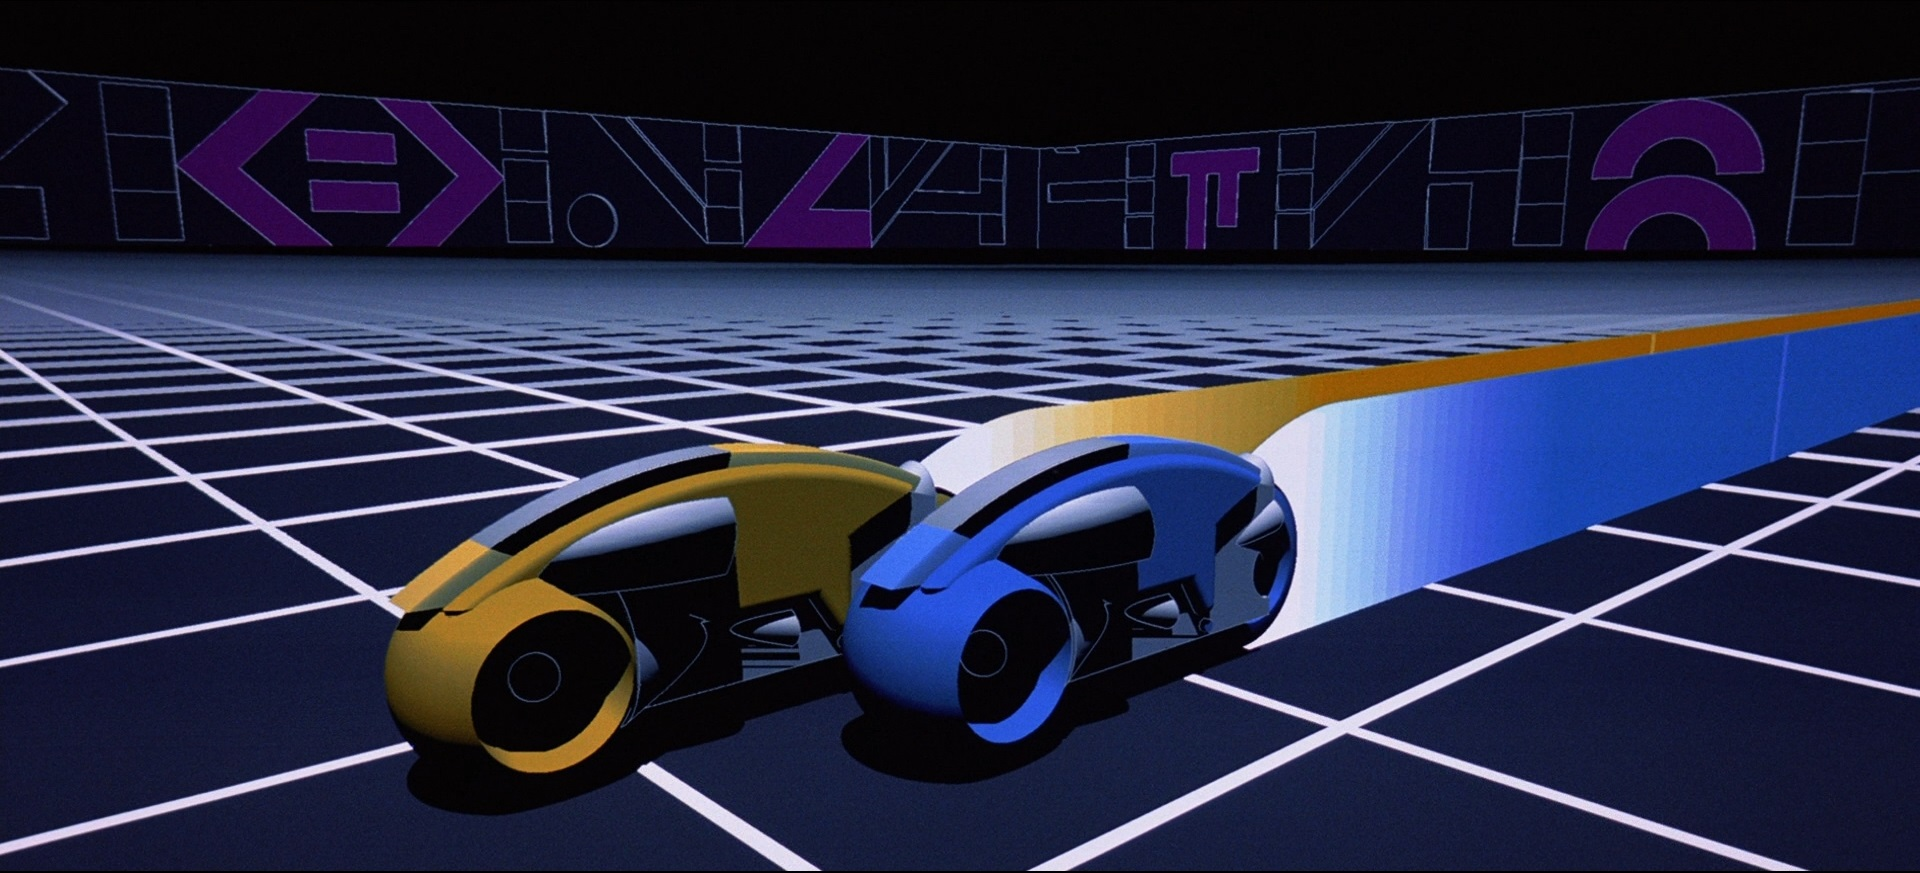 Lightcycle race in Tron (1982)